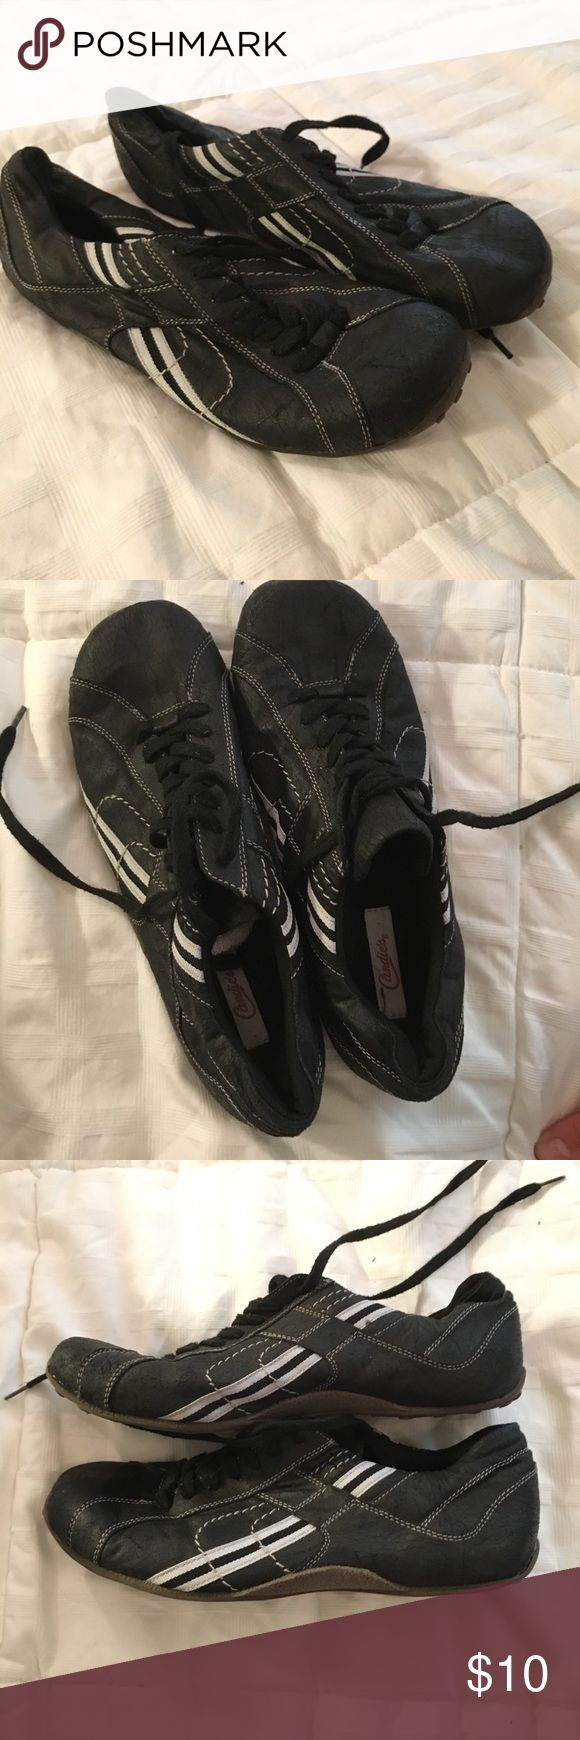 Candies Kazzaz Flat cracked faux leather shoes Decent condition. Used but not warn. Nice flat athletic looking shoes. Has cracked soft leather appearance. All man made materials. Candie's Shoes Flats & Loafers